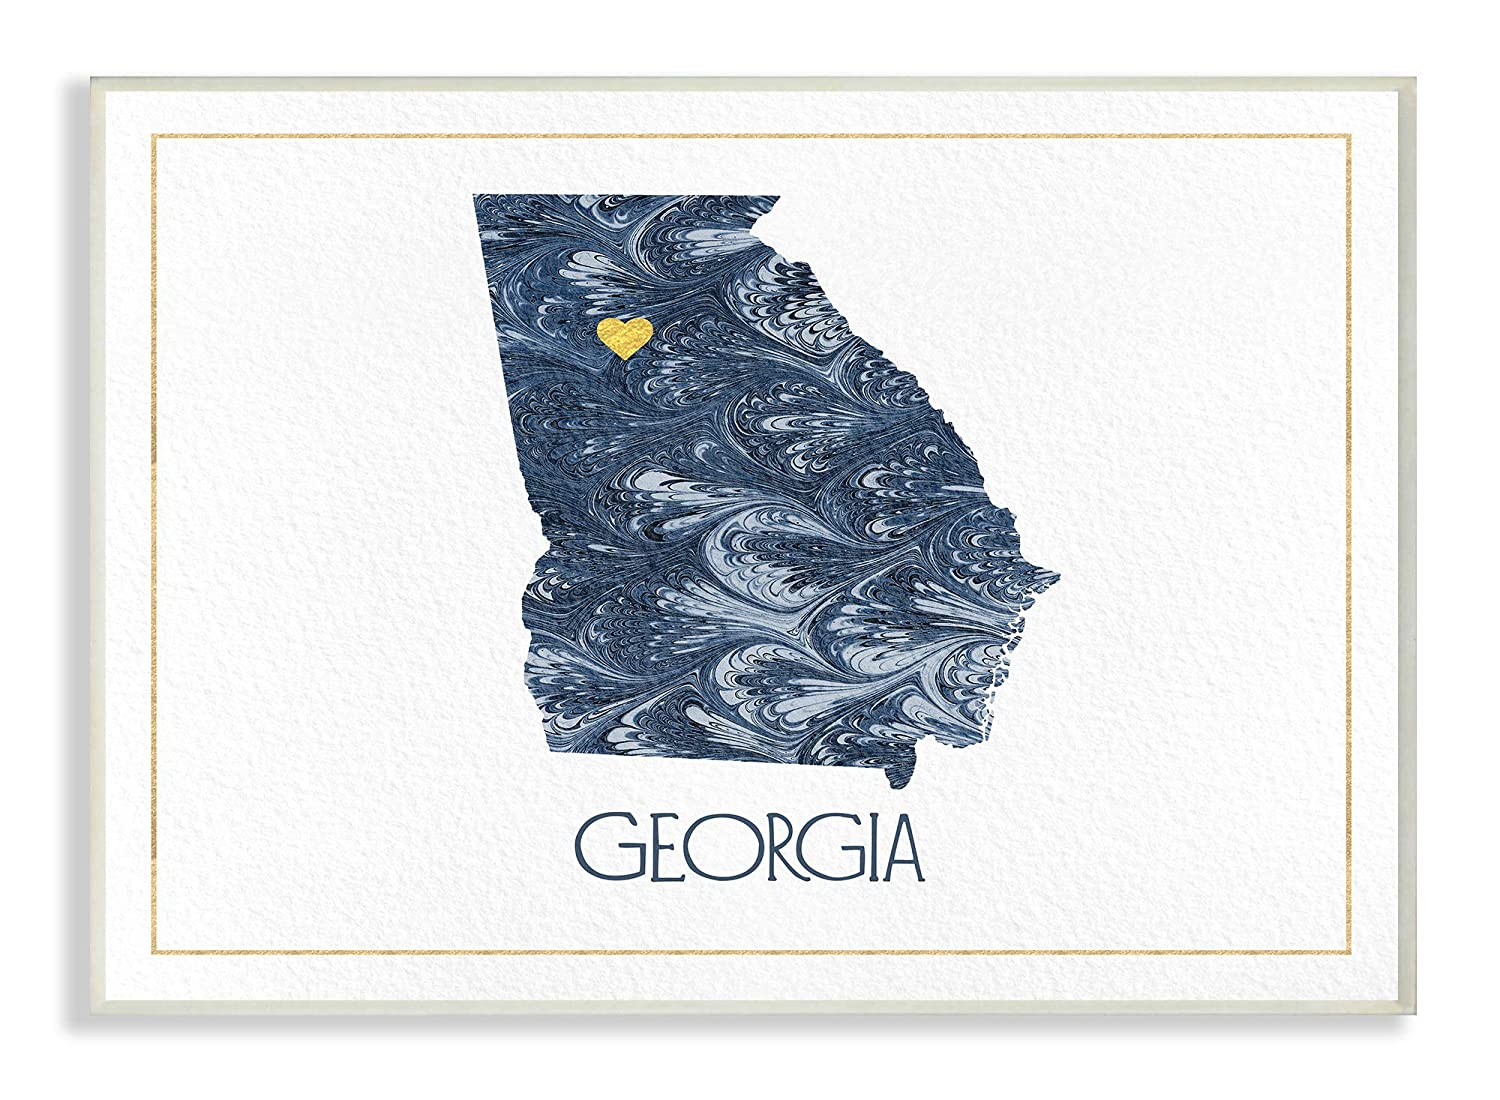 Multi-Color The Stupell Home Decor Georgia Minimal Blue Marbled Paper Silhouette Framed Giclee Texturized Art 11 x 14